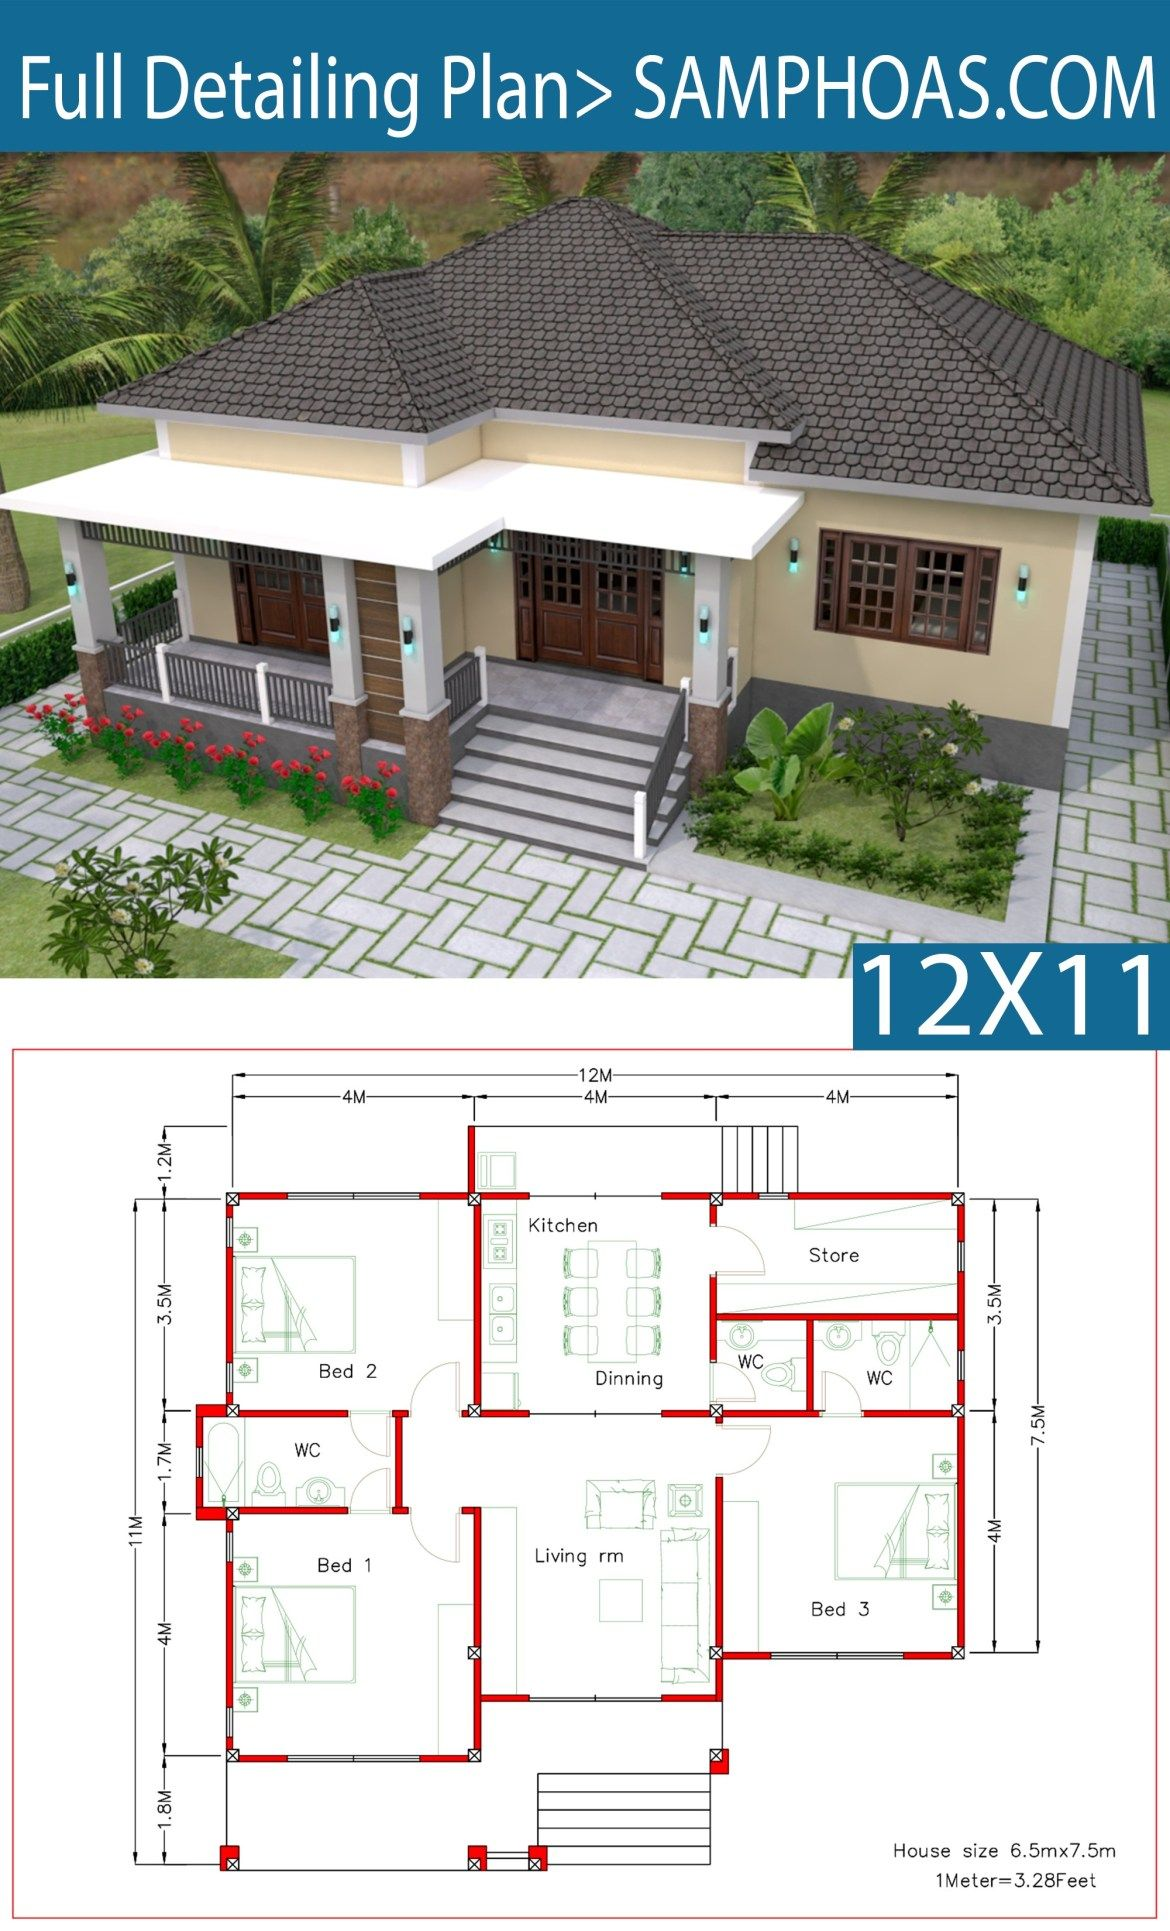 Interior Design Plan 12x11m With Full Plan 3beds Samphoas Plansearch Simple House Design Model House Plan House Plan Gallery